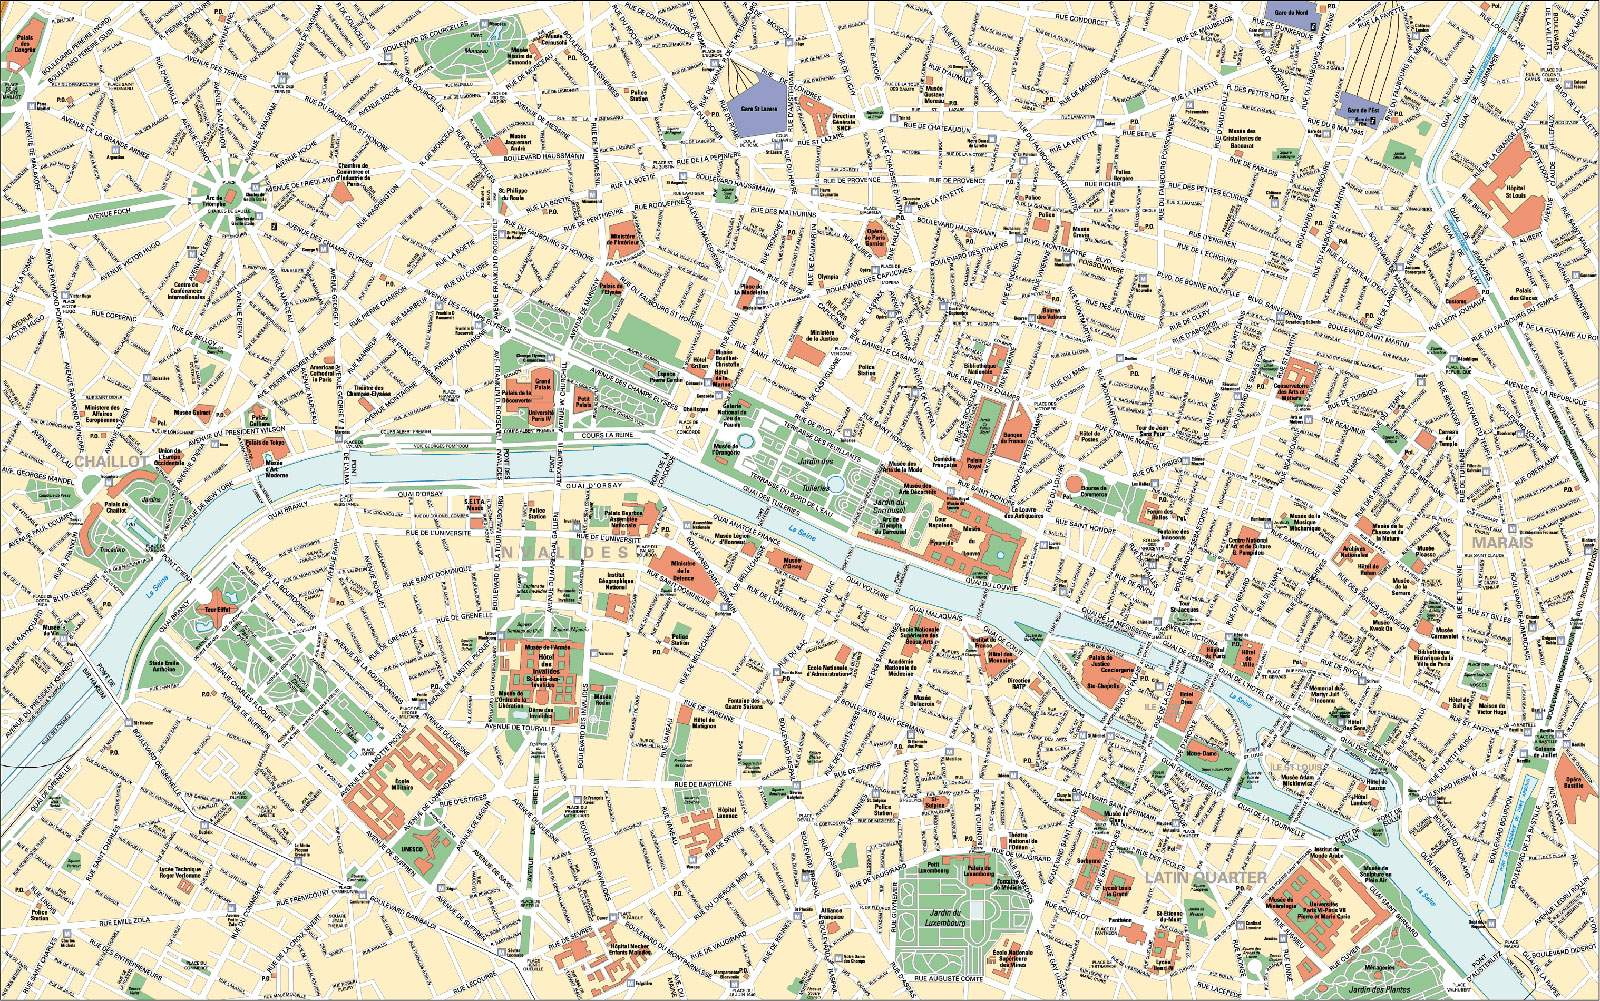 Large Paris Maps For Free Download And Print   High-Resolution And - Printable Map Of Paris City Centre